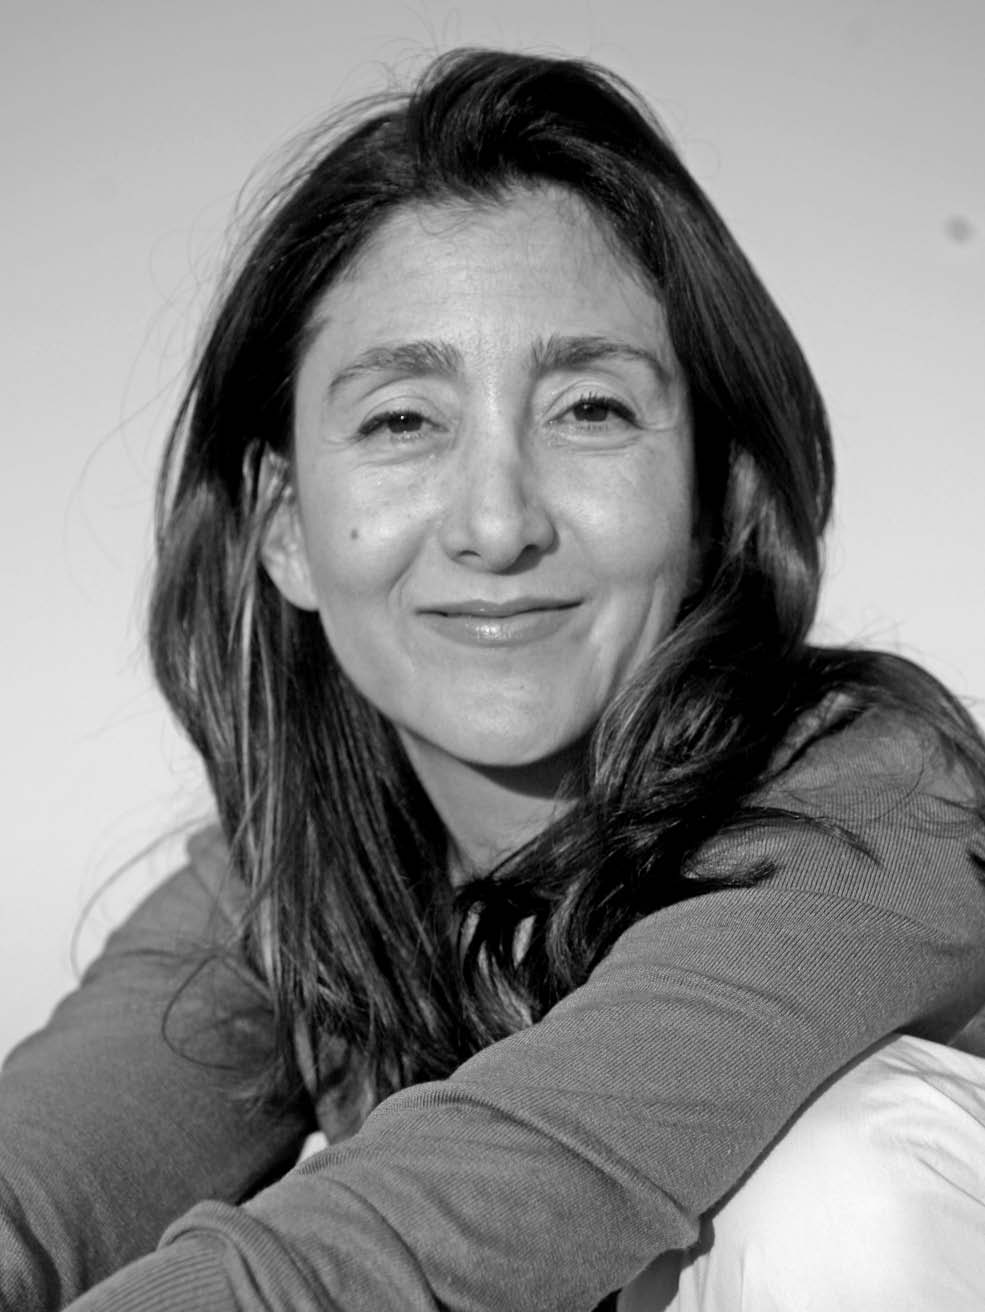 Ingrid Betancourt, former presidential candidate for Colombia, FARC hostage